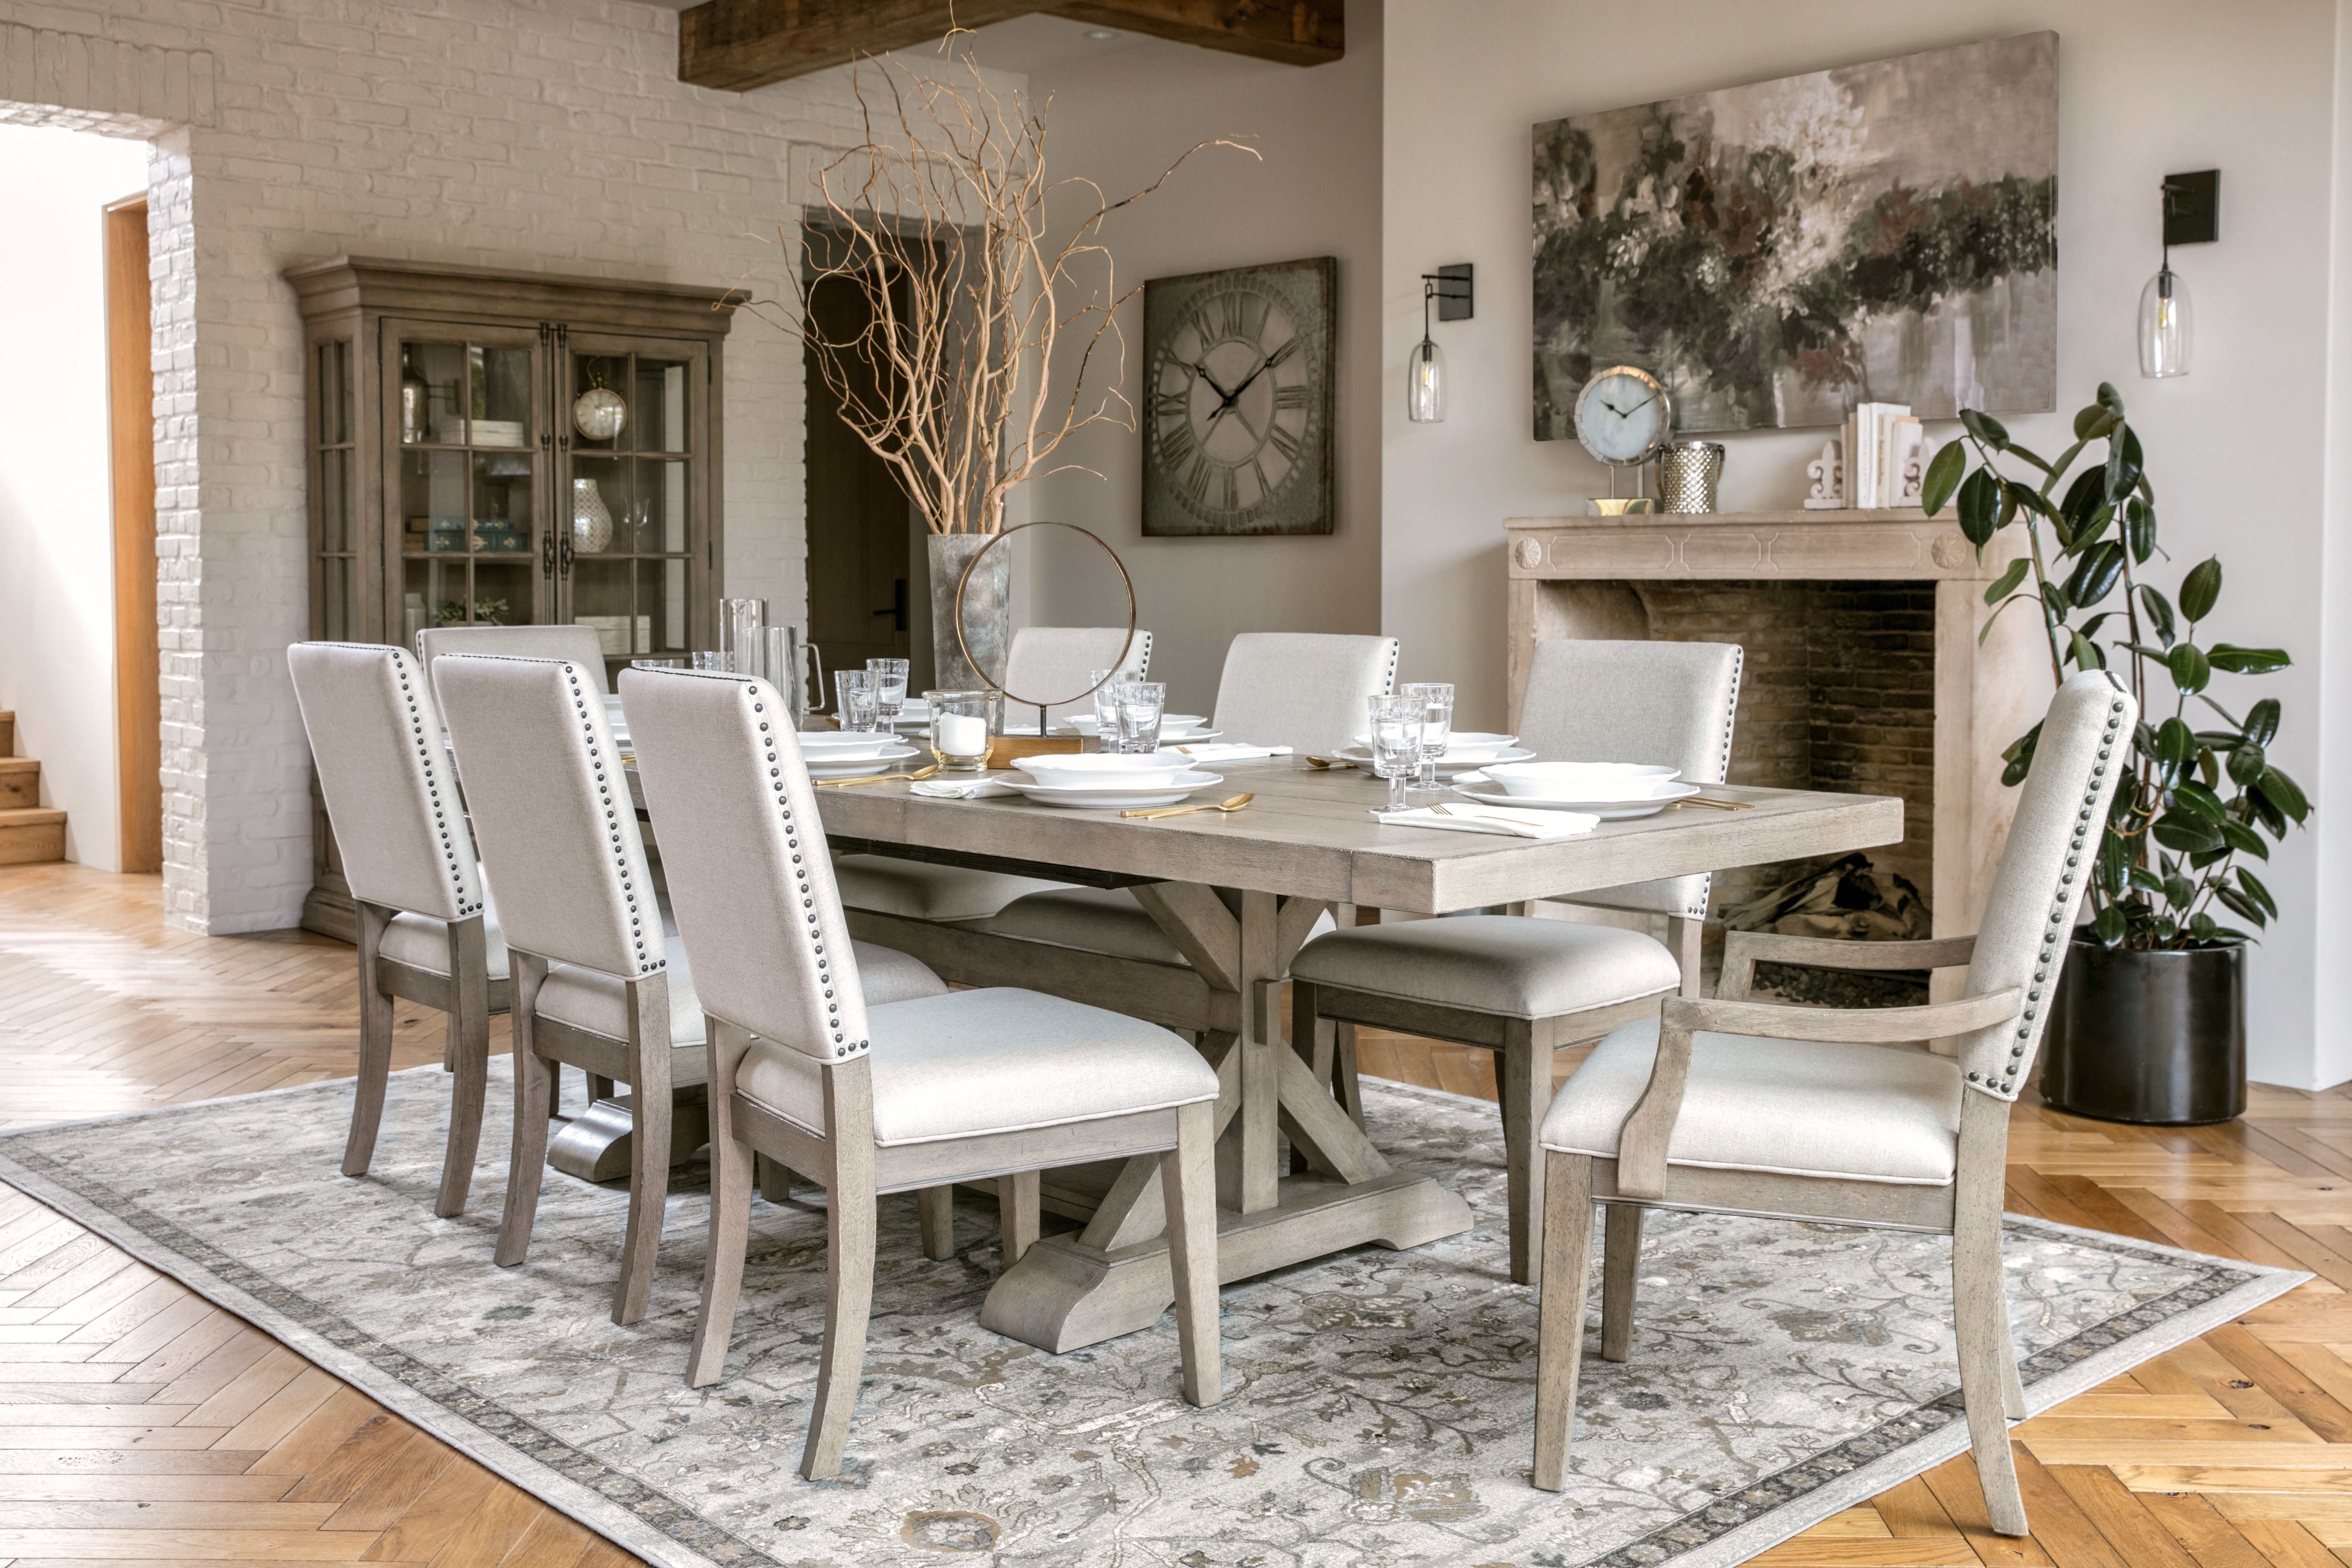 Walden 9 Piece Extension Dining Set | Nailhead Trim, Side Chair And Throughout Best And Newest Walden 9 Piece Extension Dining Sets (Image 17 of 20)